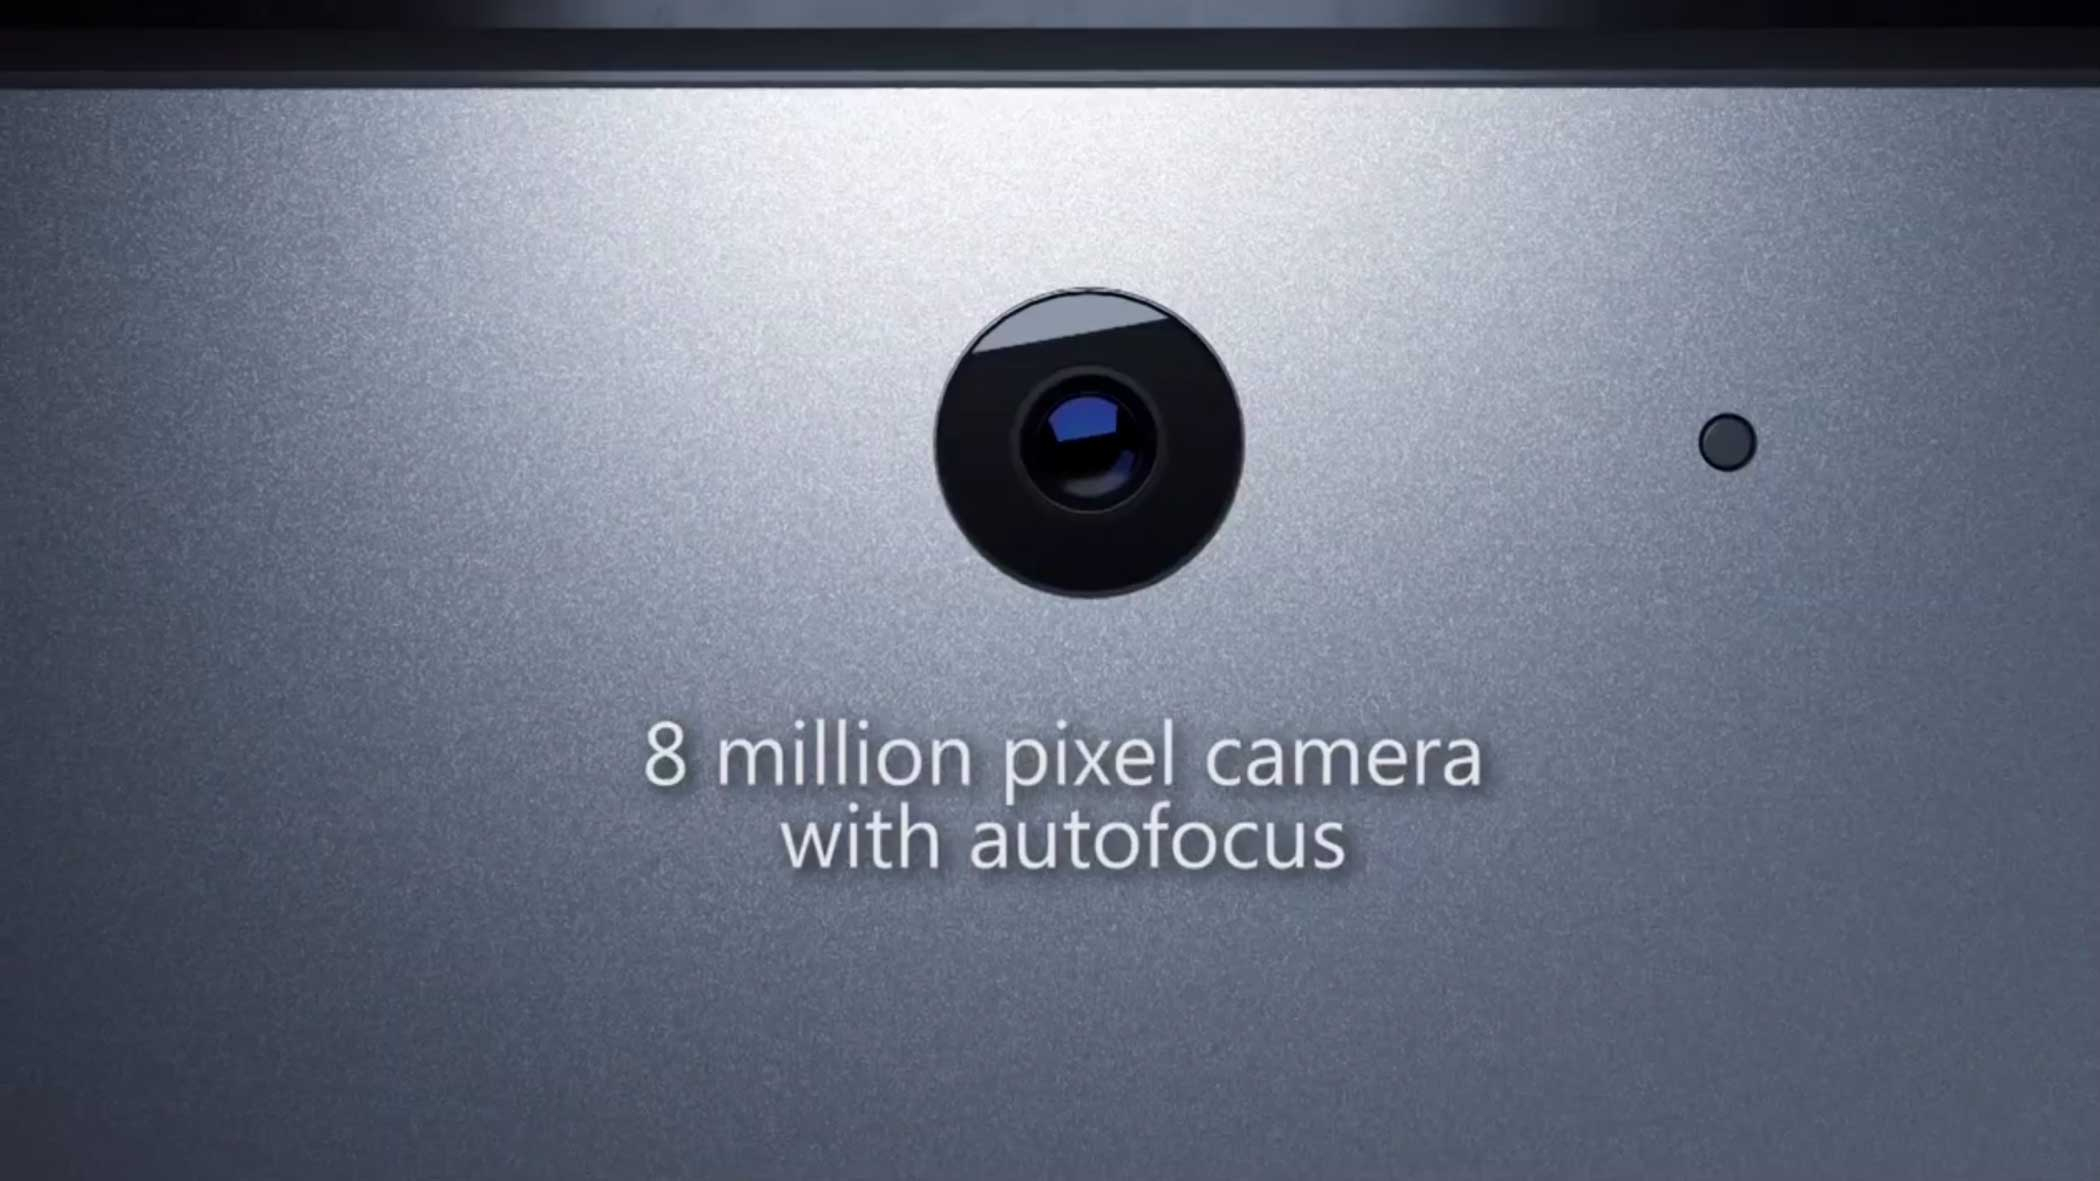 It's improved camera now has autofocus as well.